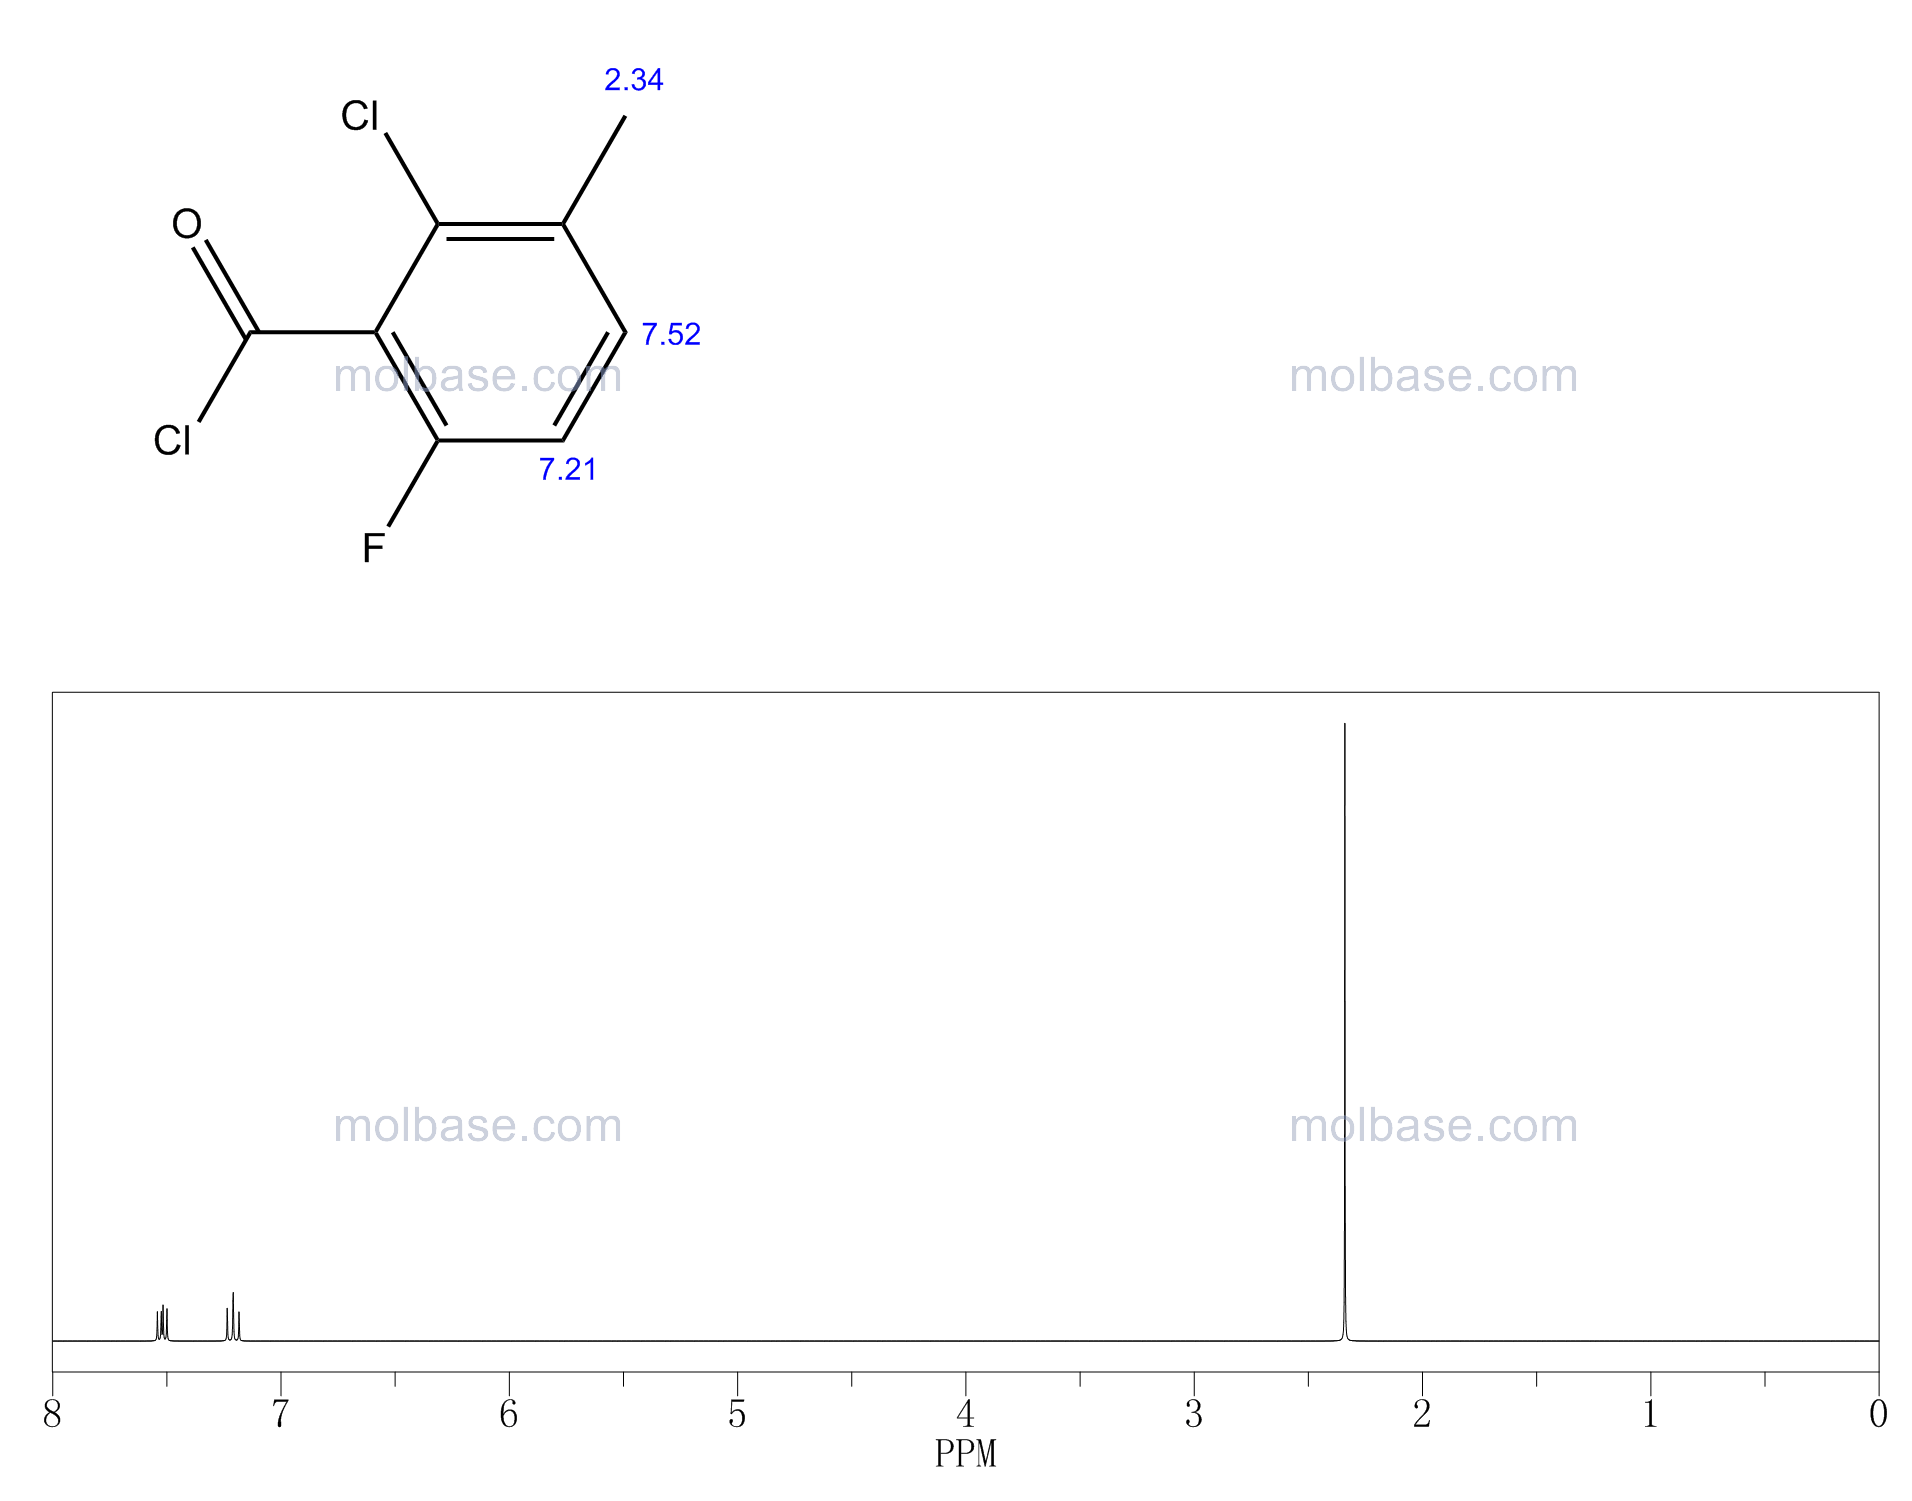 2-CHLORO-6-FLUORO-3-METHYLBENZOYL CHLORIDE NMR spectra analysis, Chemical CAS NO. 261762-82-7 NMR spectral analysis, 2-CHLORO-6-FLUORO-3-METHYLBENZOYL CHLORIDE C-NMR spectrum